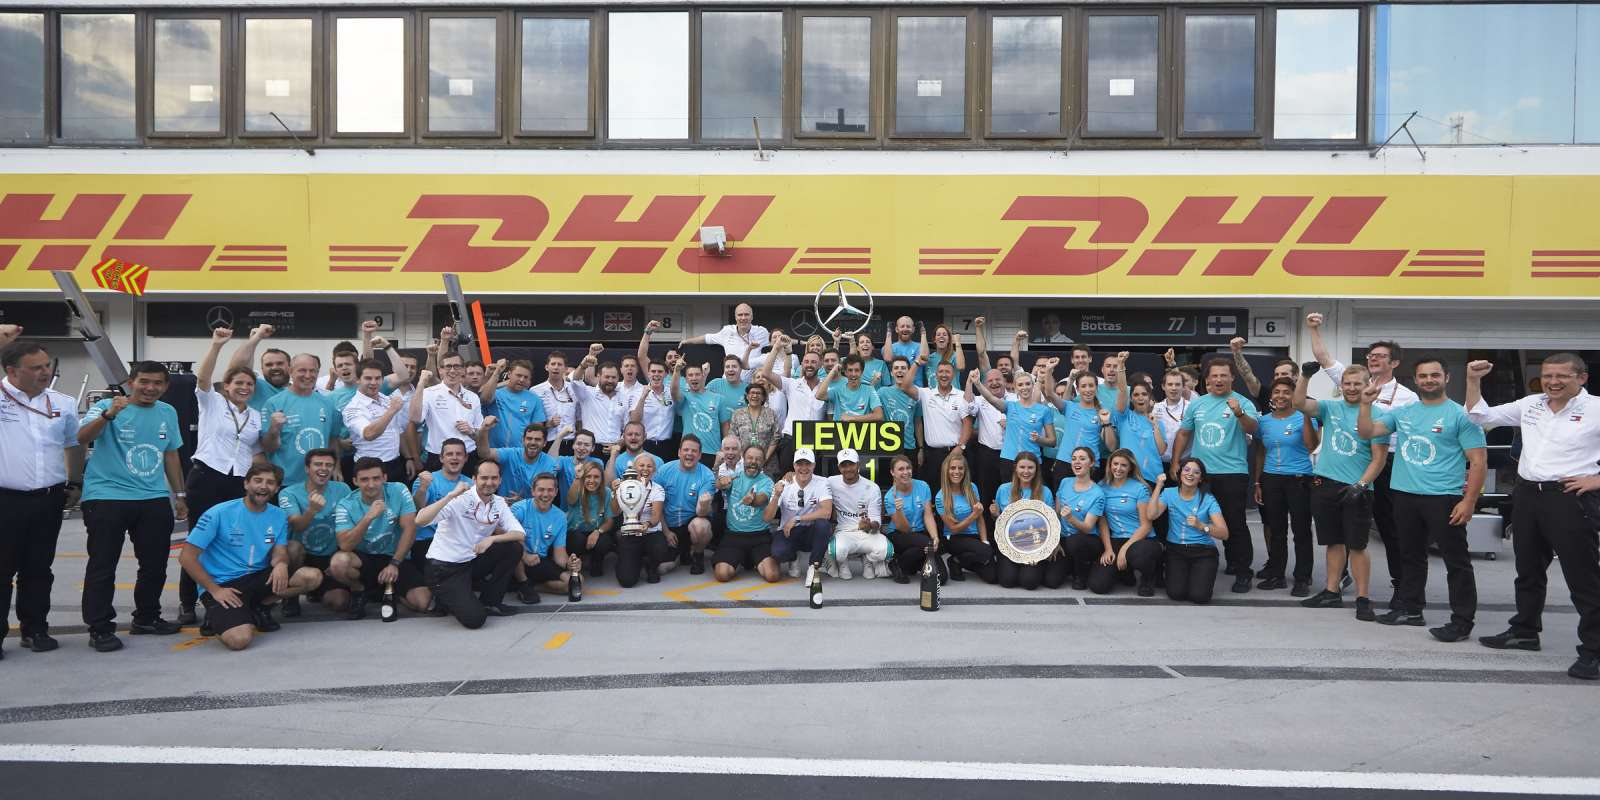 Sunday images from the 2018 Hungarian Grand Prix